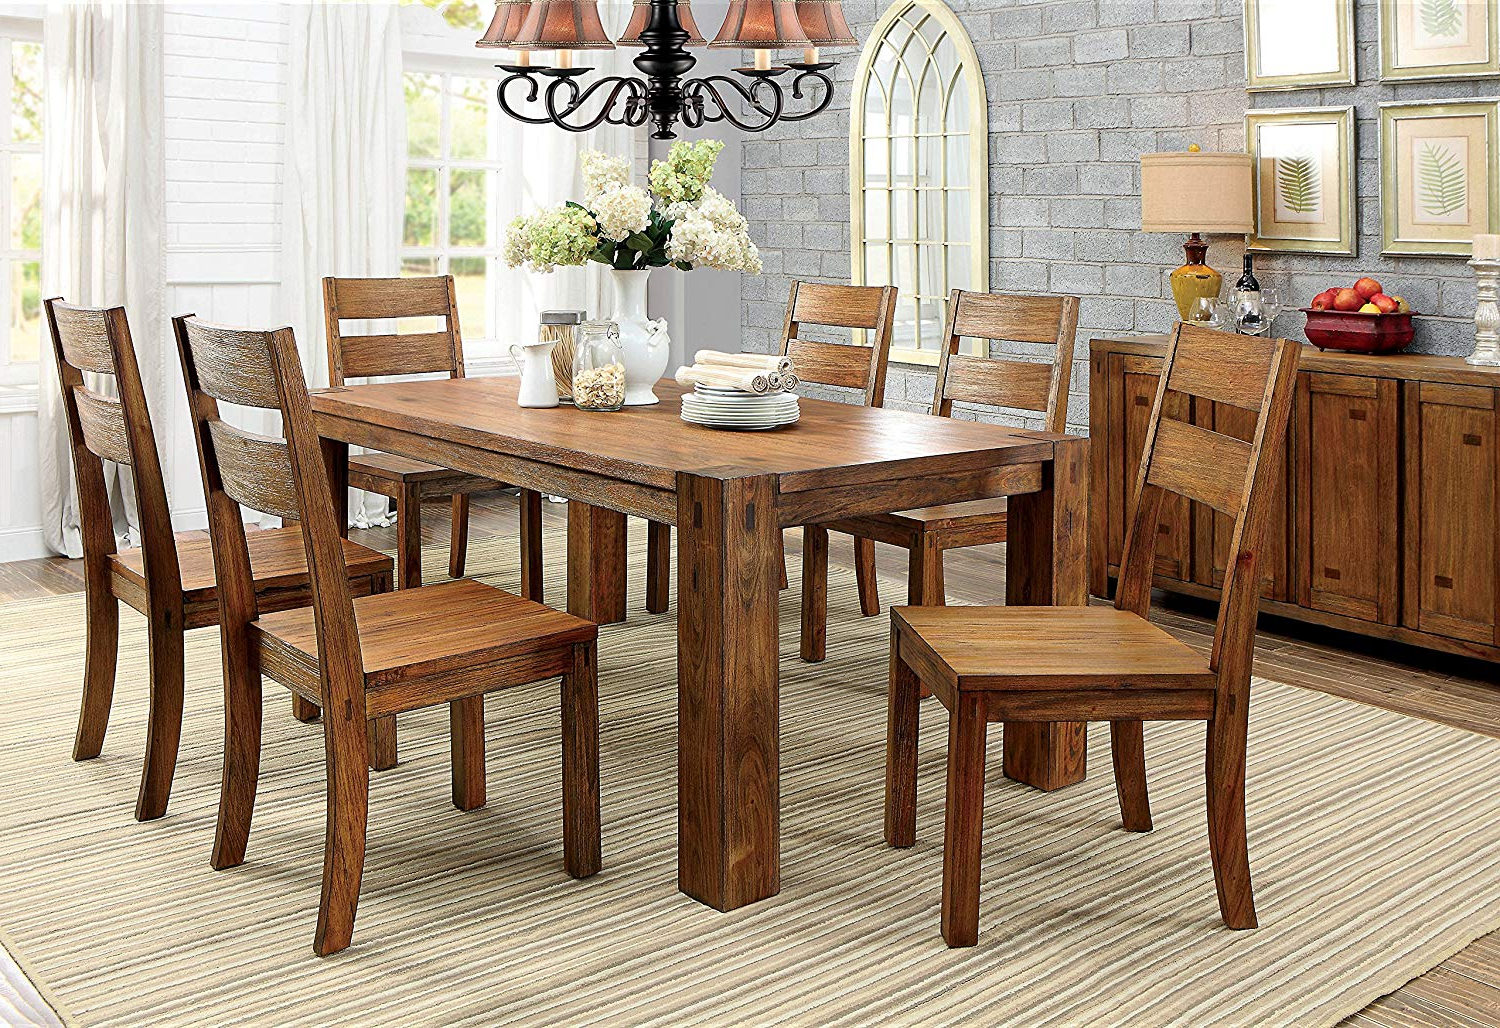 Amazon – Furniture Of America Maynard 7 Piece Wooden Dining Set For Widely Used Maynard 5 Piece Dining Sets (View 7 of 25)